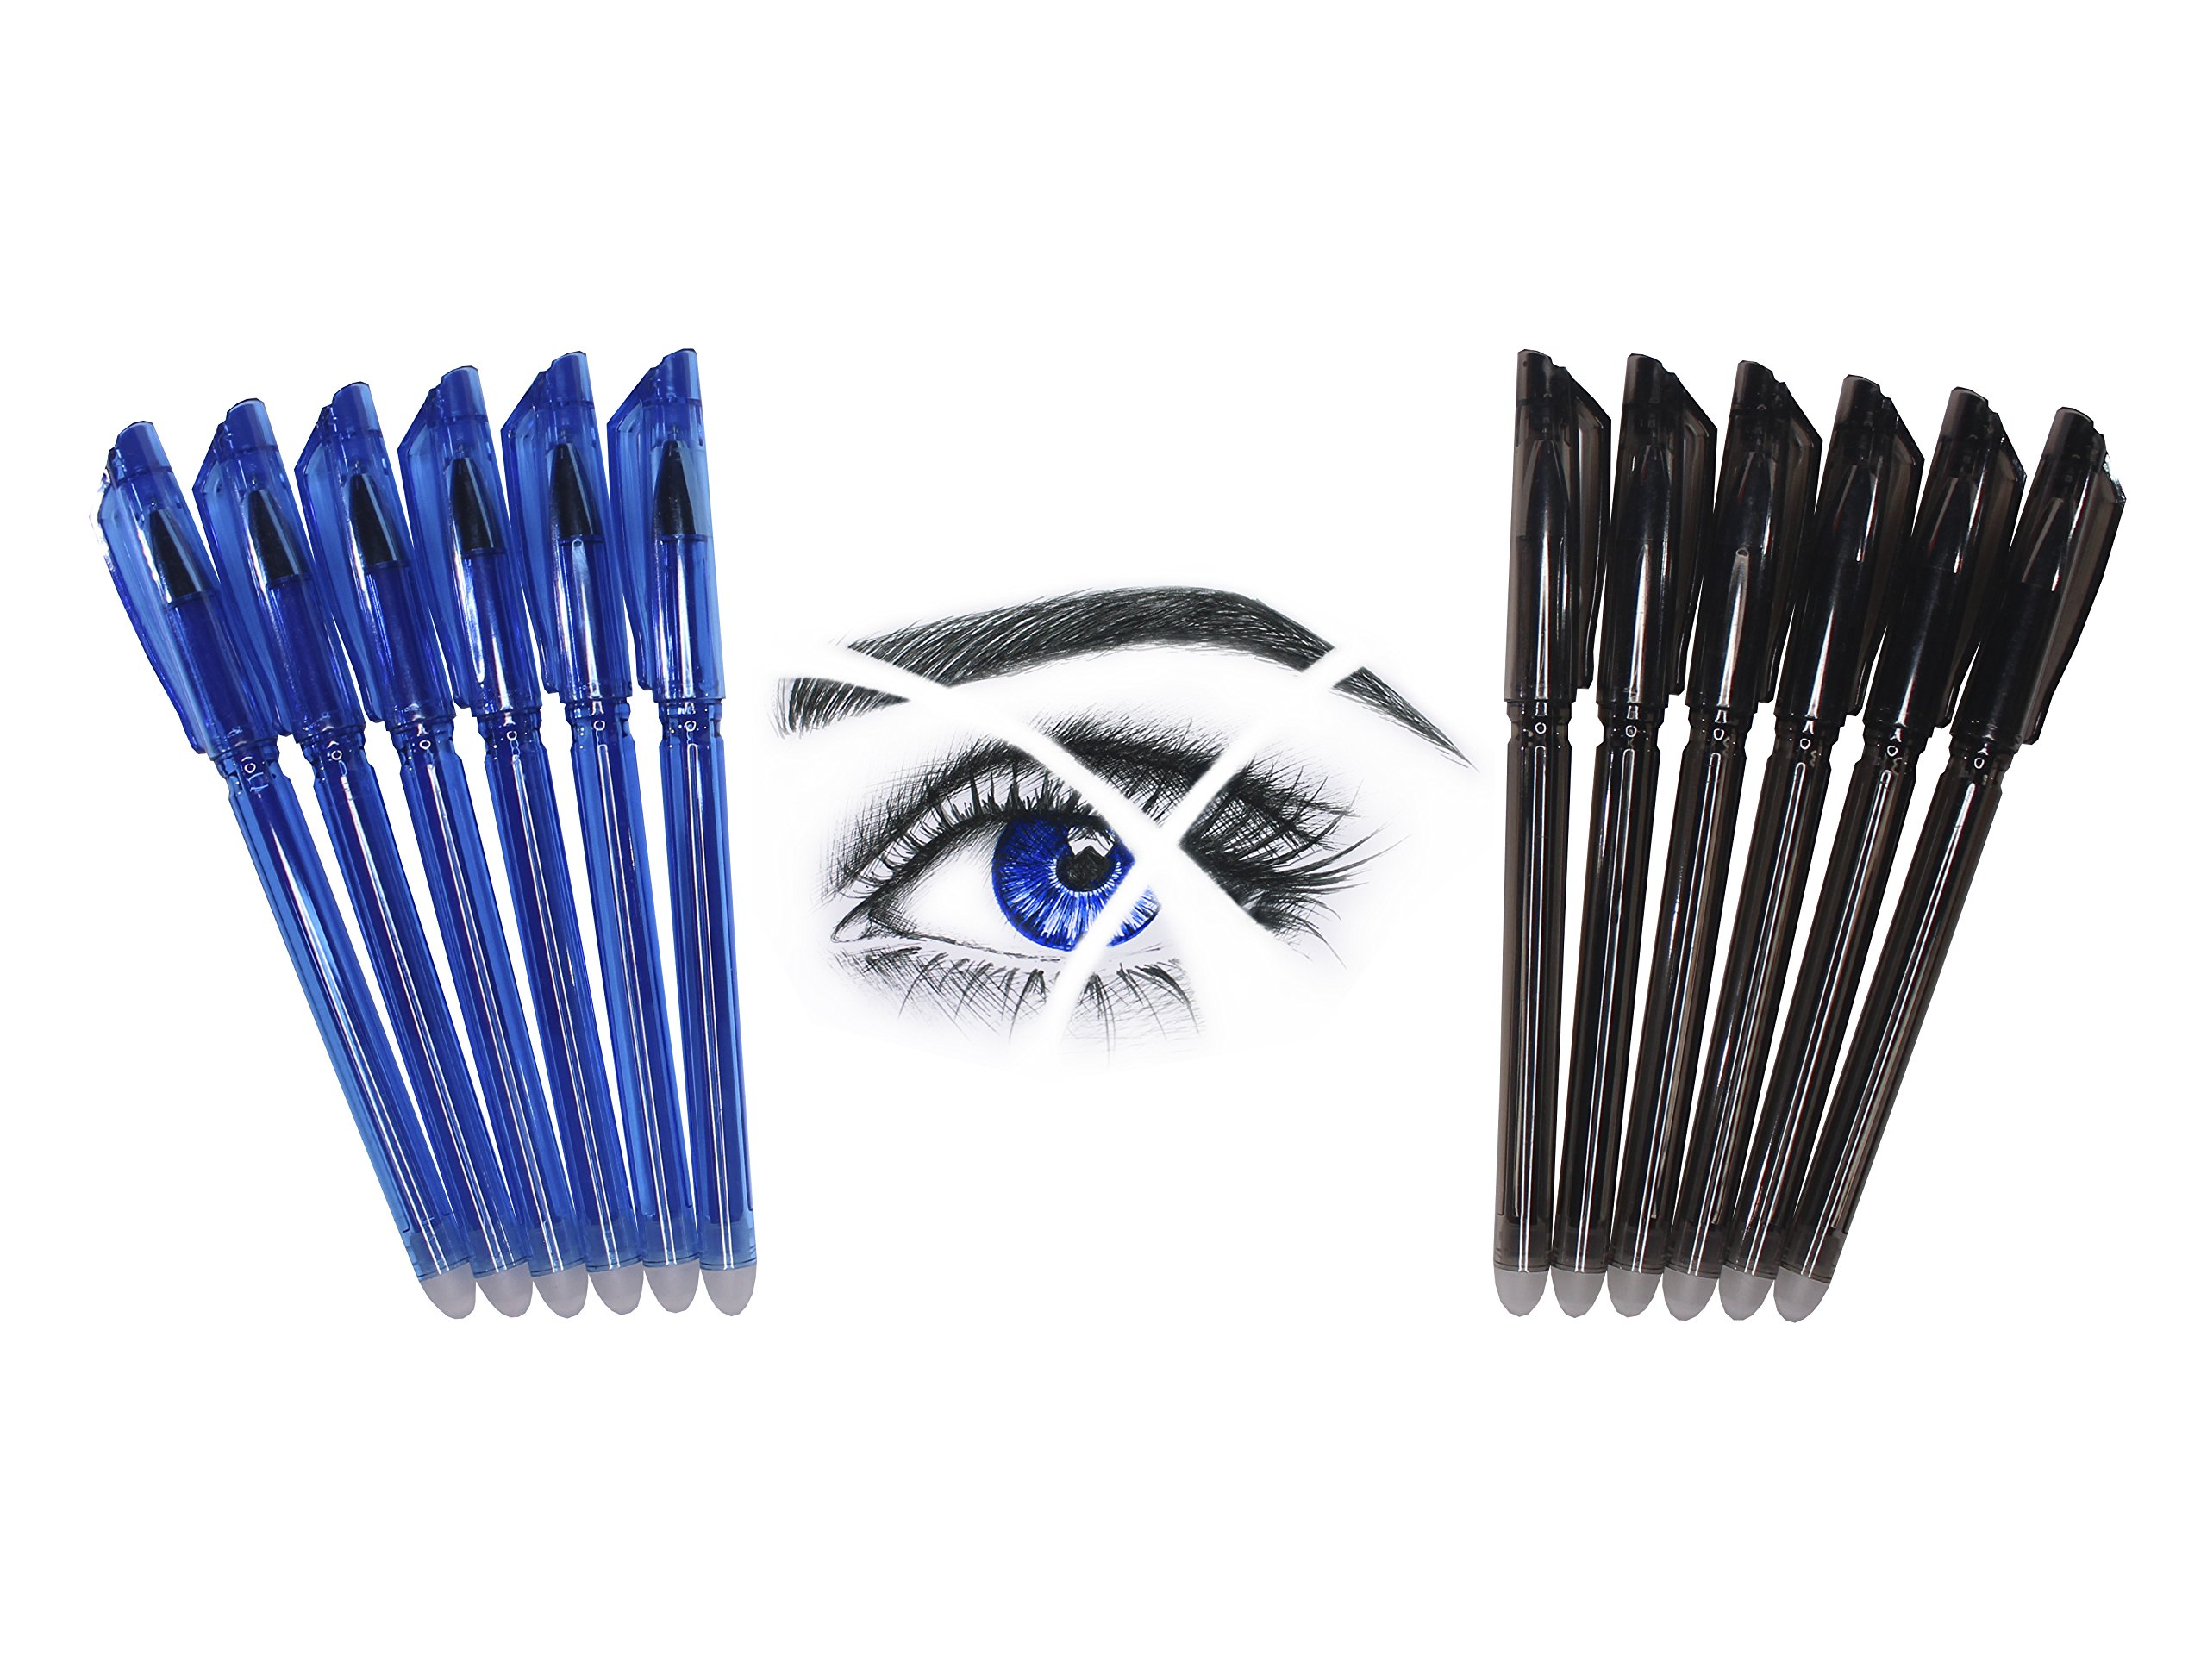 Friction Erasable Pens - Value Pack of 6 Black & 6 Blue Pens with Ultra Fine 0.38mm Point - 12 Erasable Gel Pens - Best for Smooth Writing & Easy Correction - by Hieno Supplies by Hieno Supplies